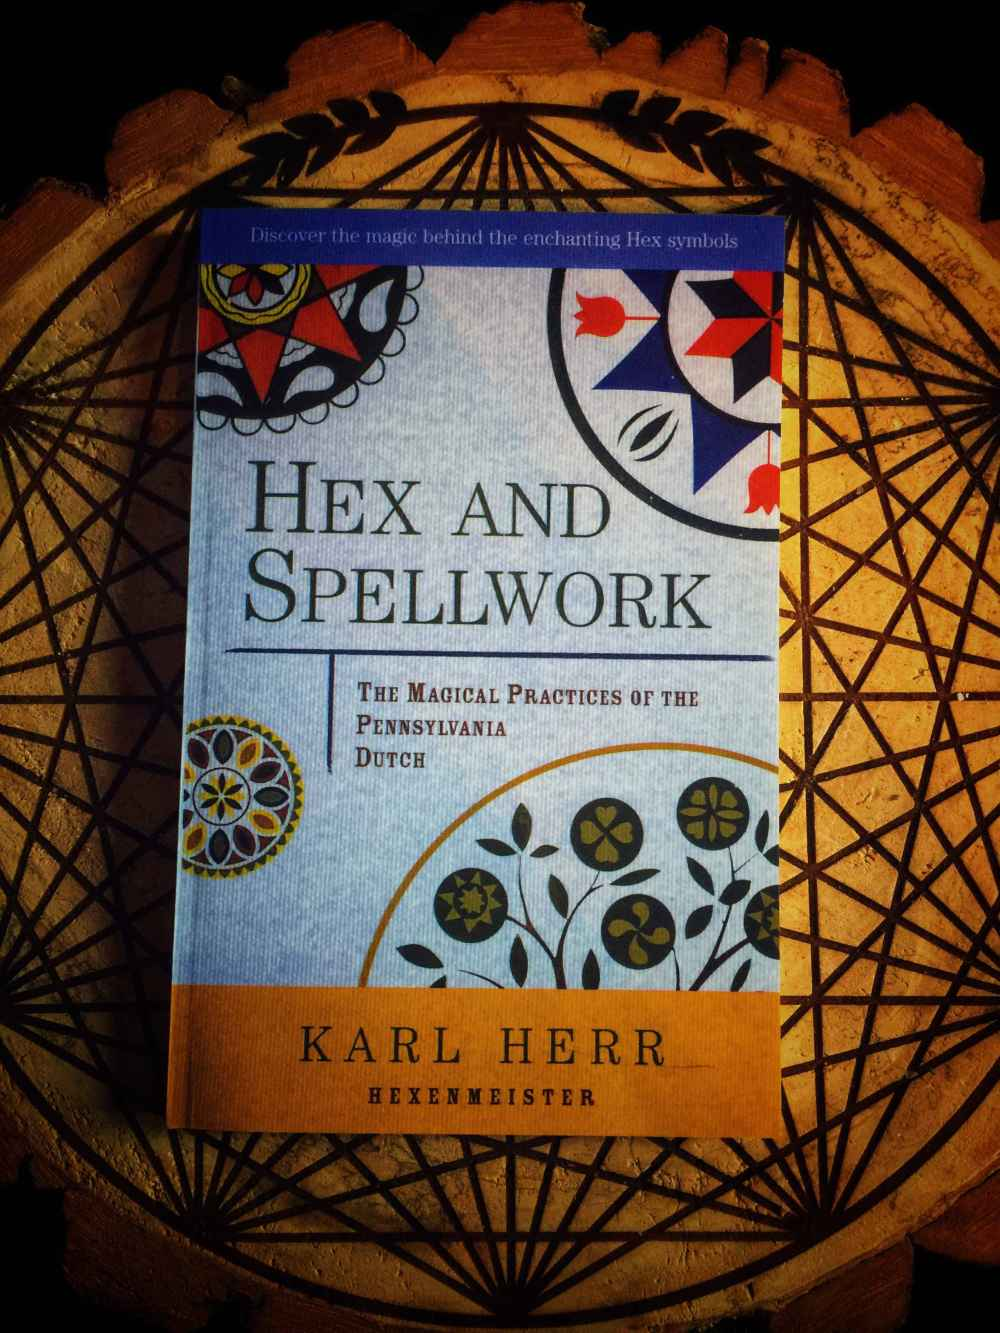 Hex and Spellwork: Magical Practices of the Pennsylvania Dutch